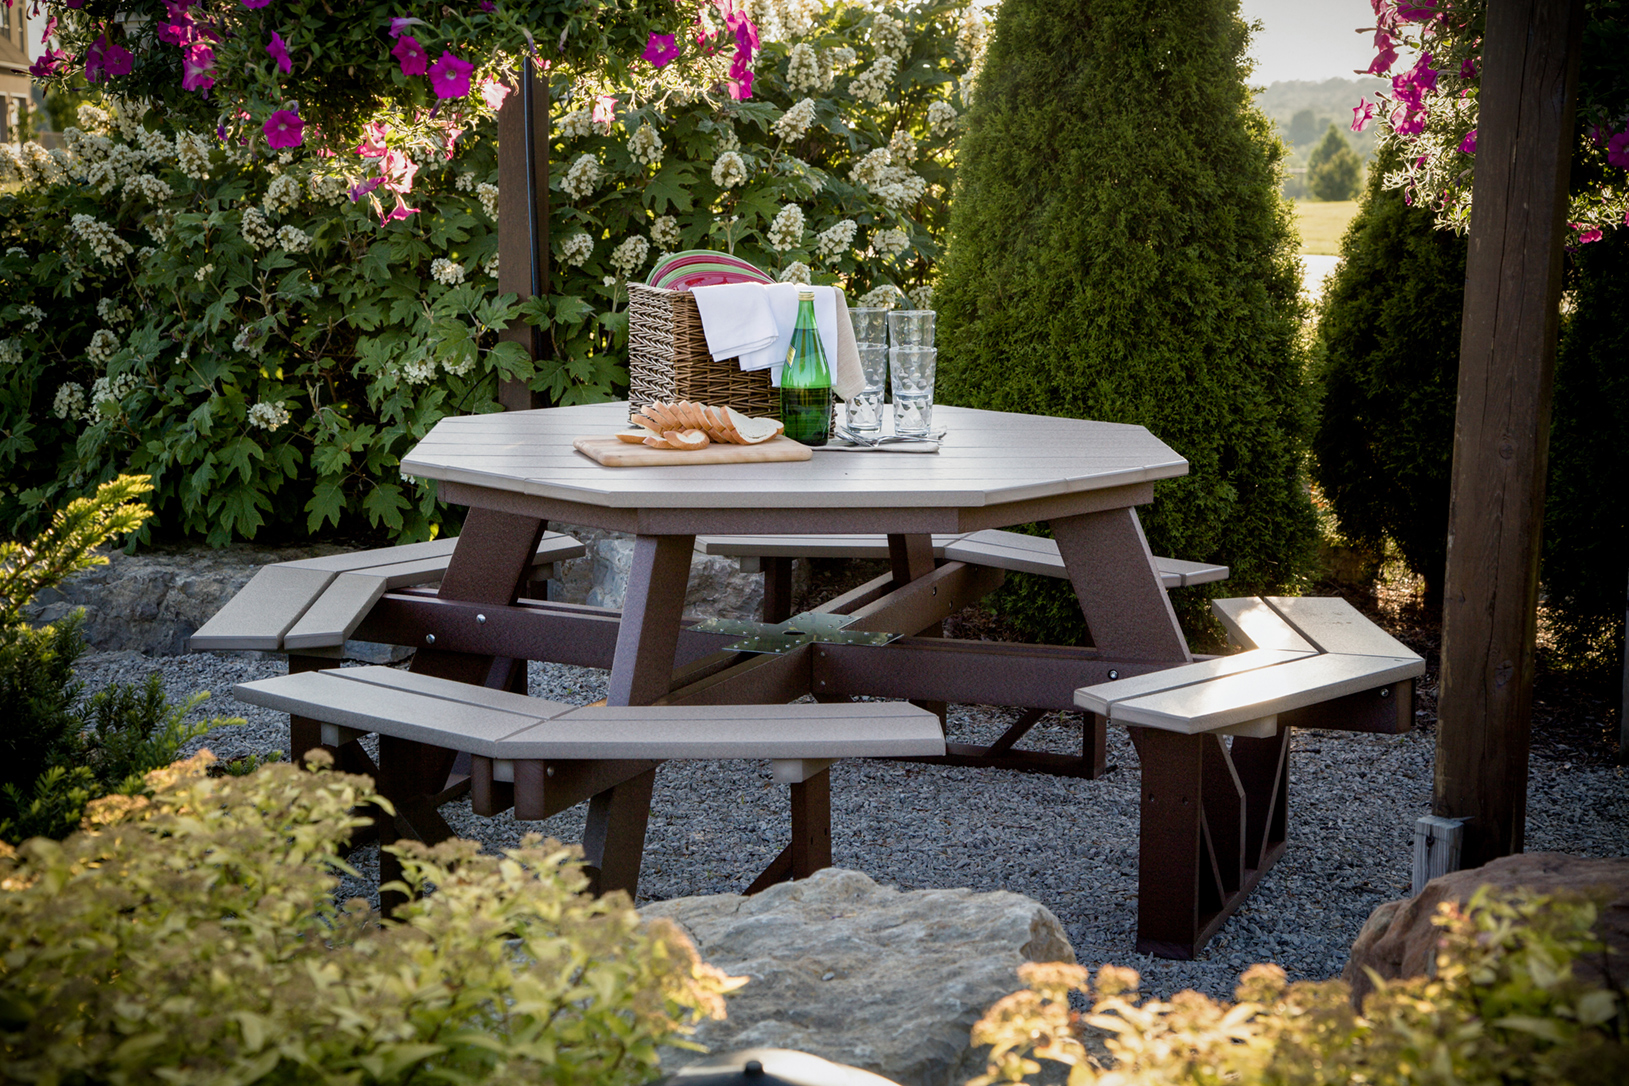 Picnic Tables & Benches & Rockers